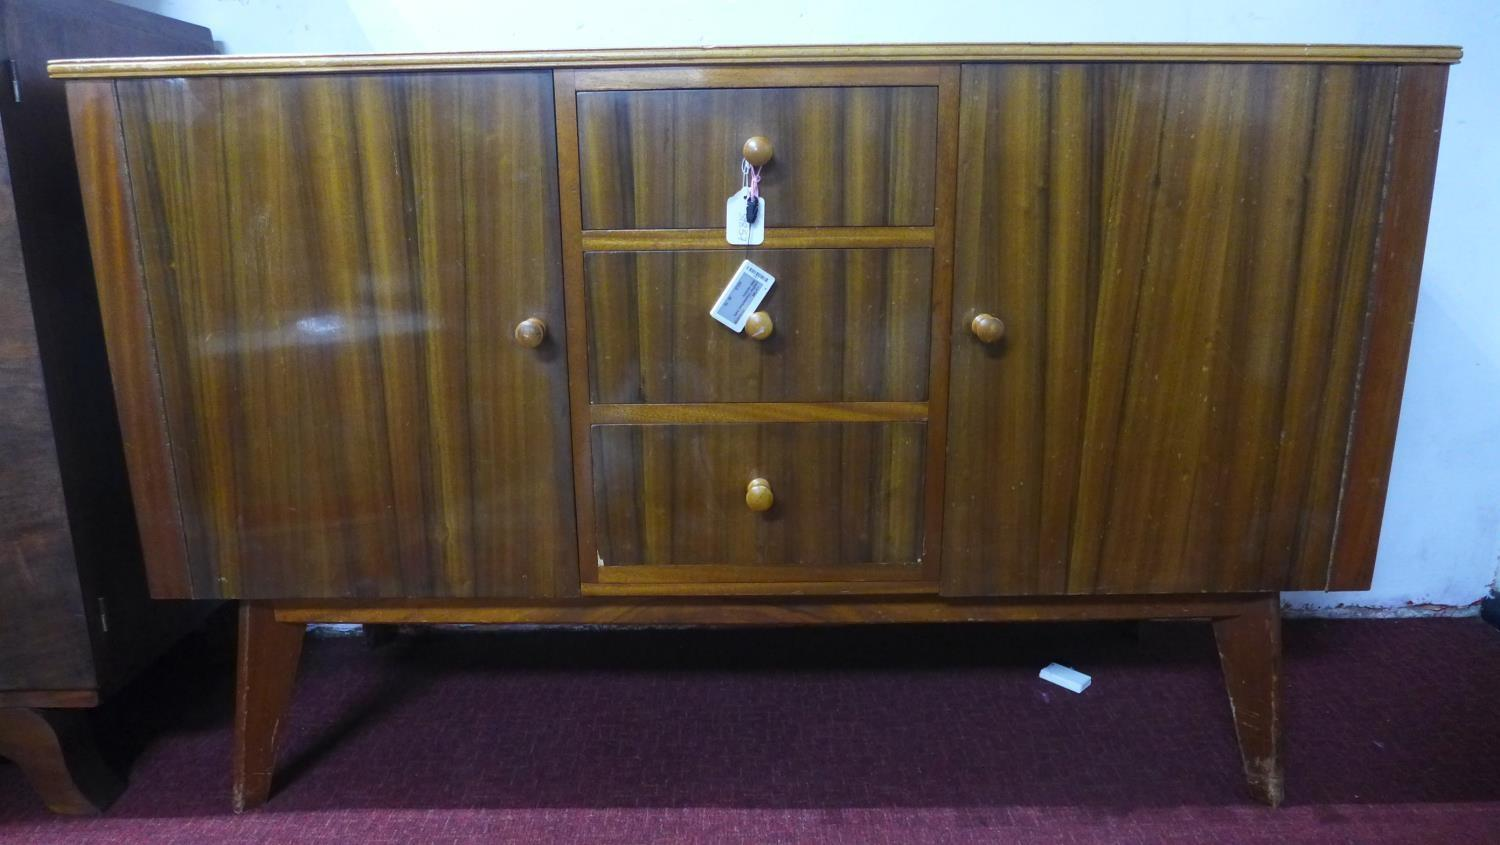 Lot 272 - A 20th century walnut Cumbrae by Morris of Glasgow sideboard, with maker's mark, having three